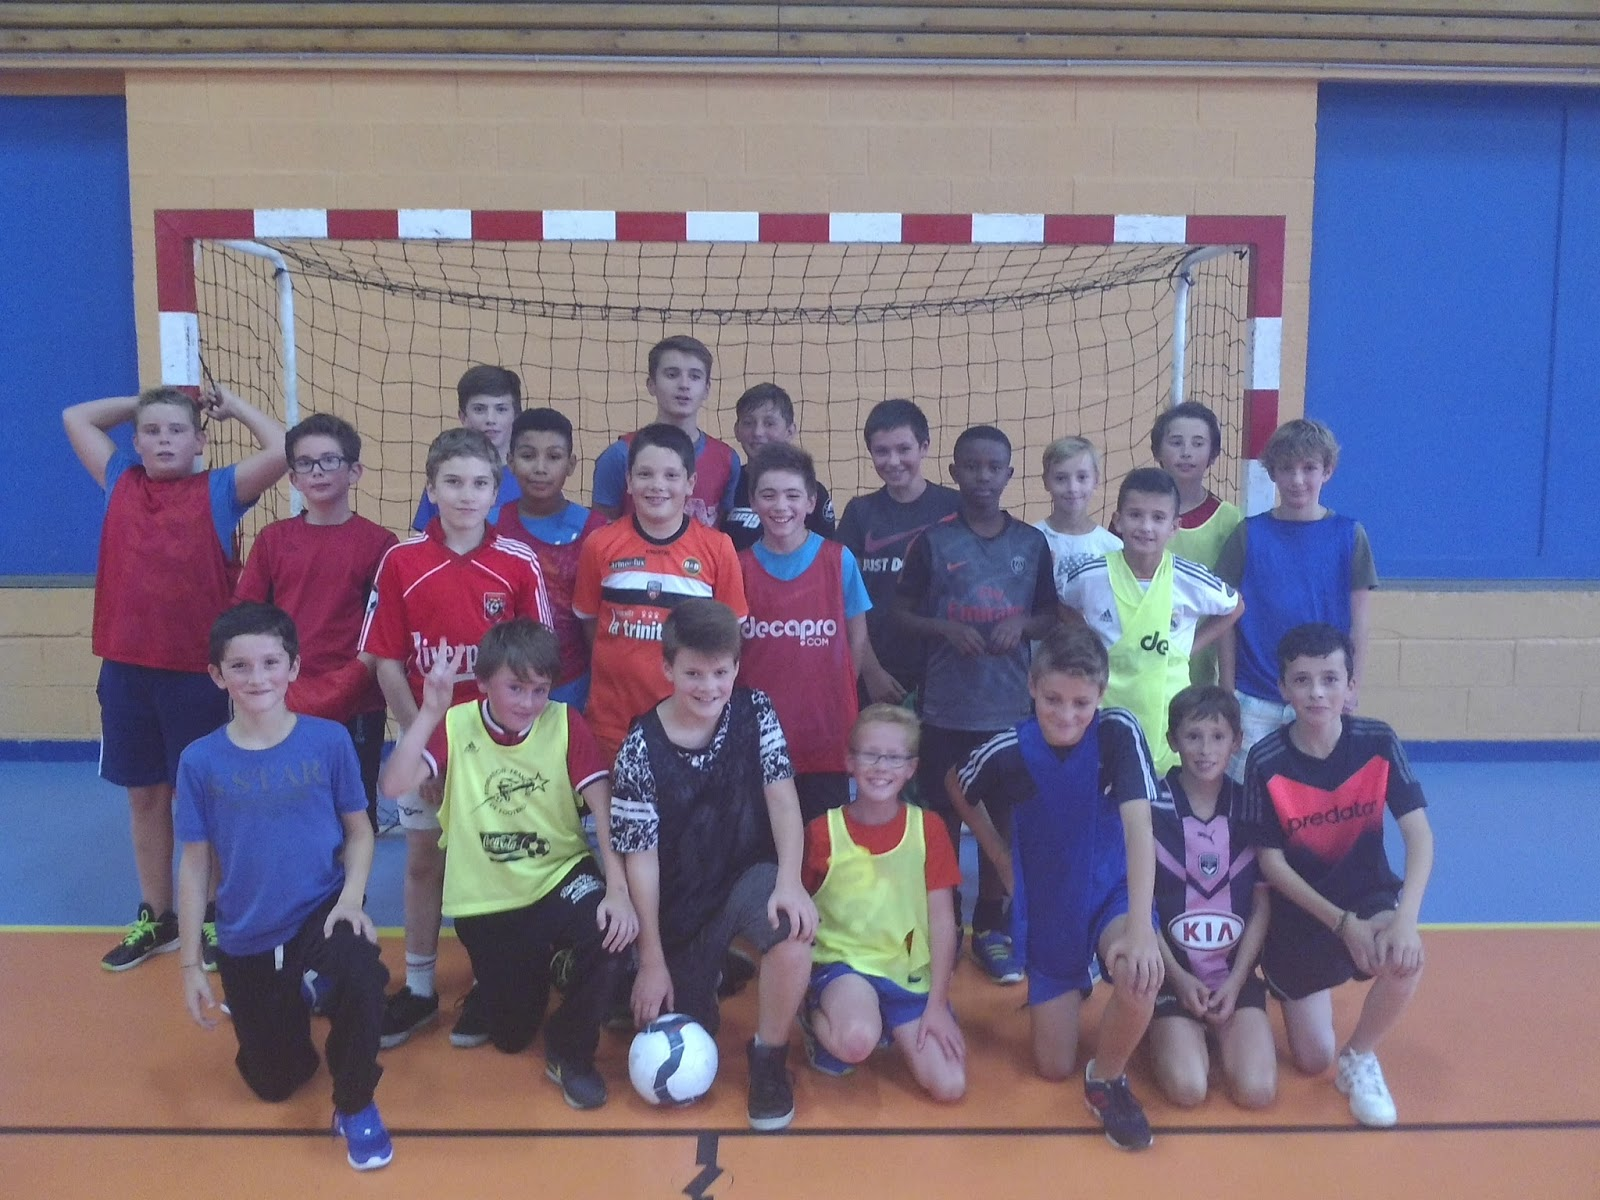 association sportive coll 232 ge fran 231 ois d assise activit 233 futsal on affiche complet